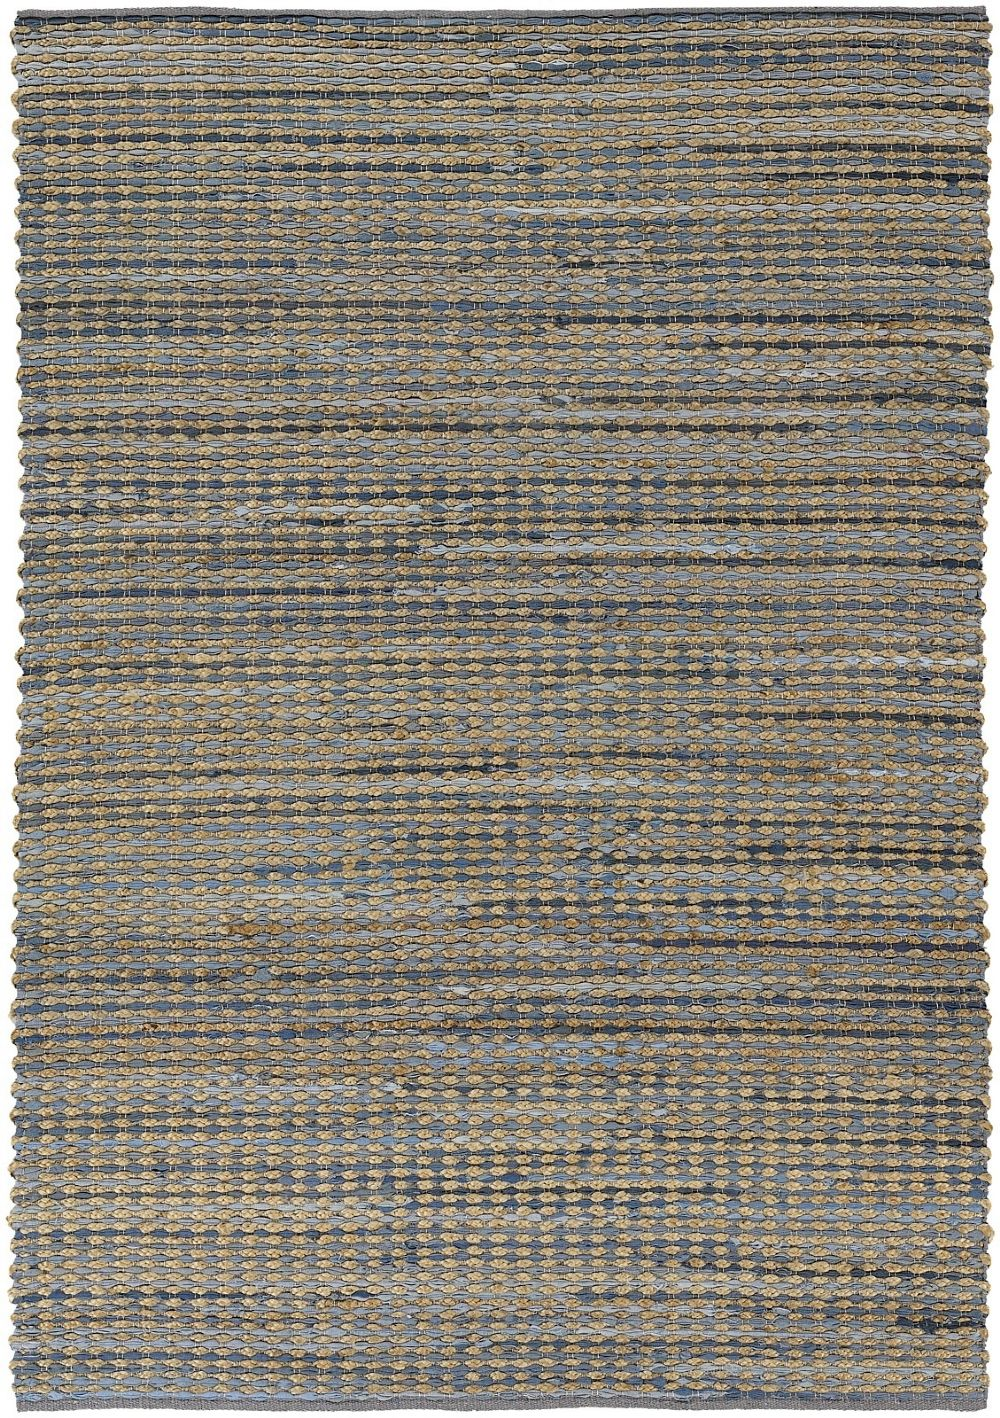 chandra easton contemporary area rug collection